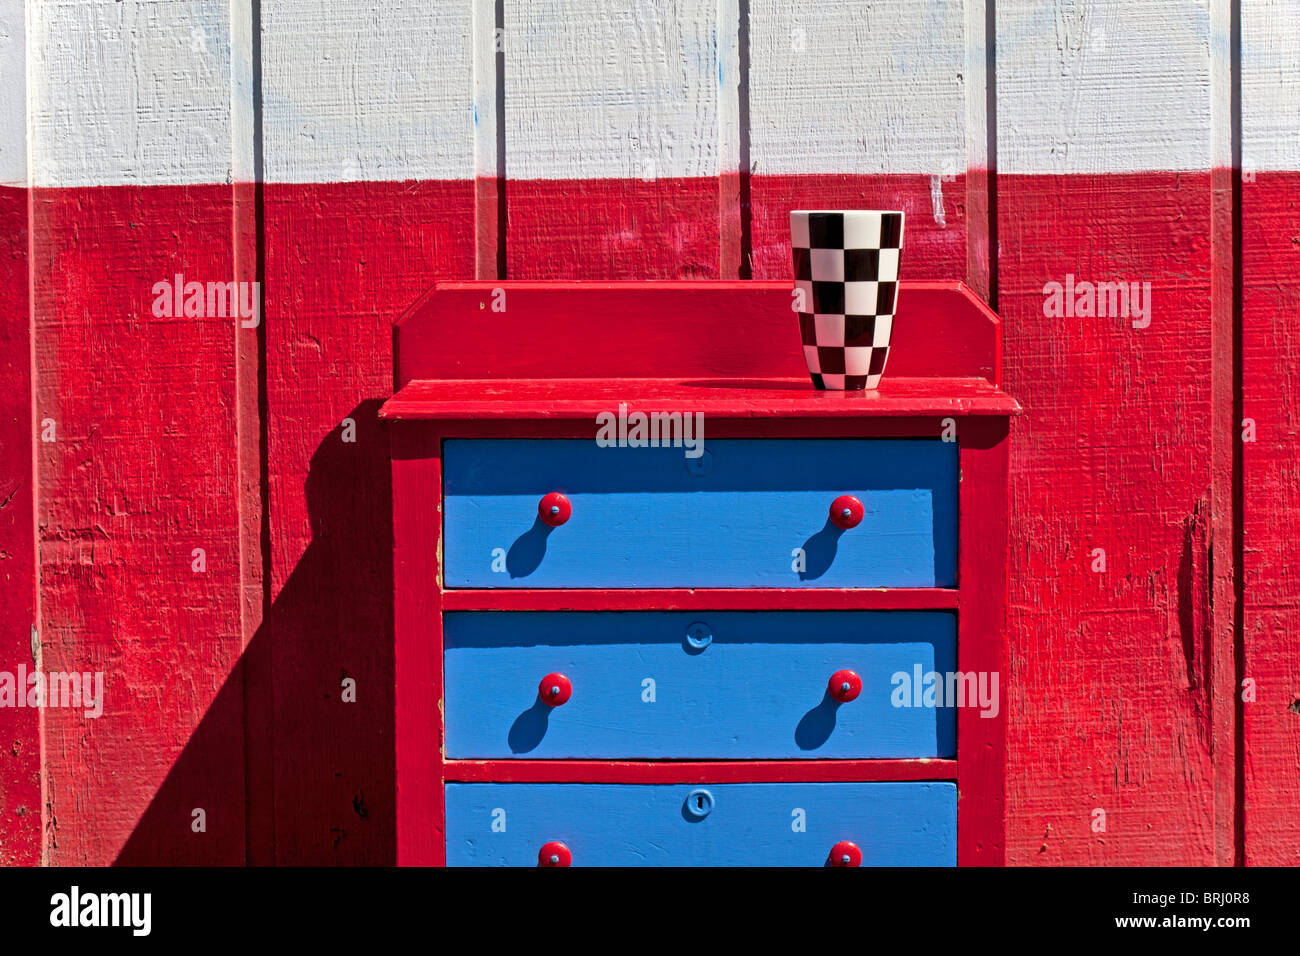 Checker vase on red drawers - Stock Image